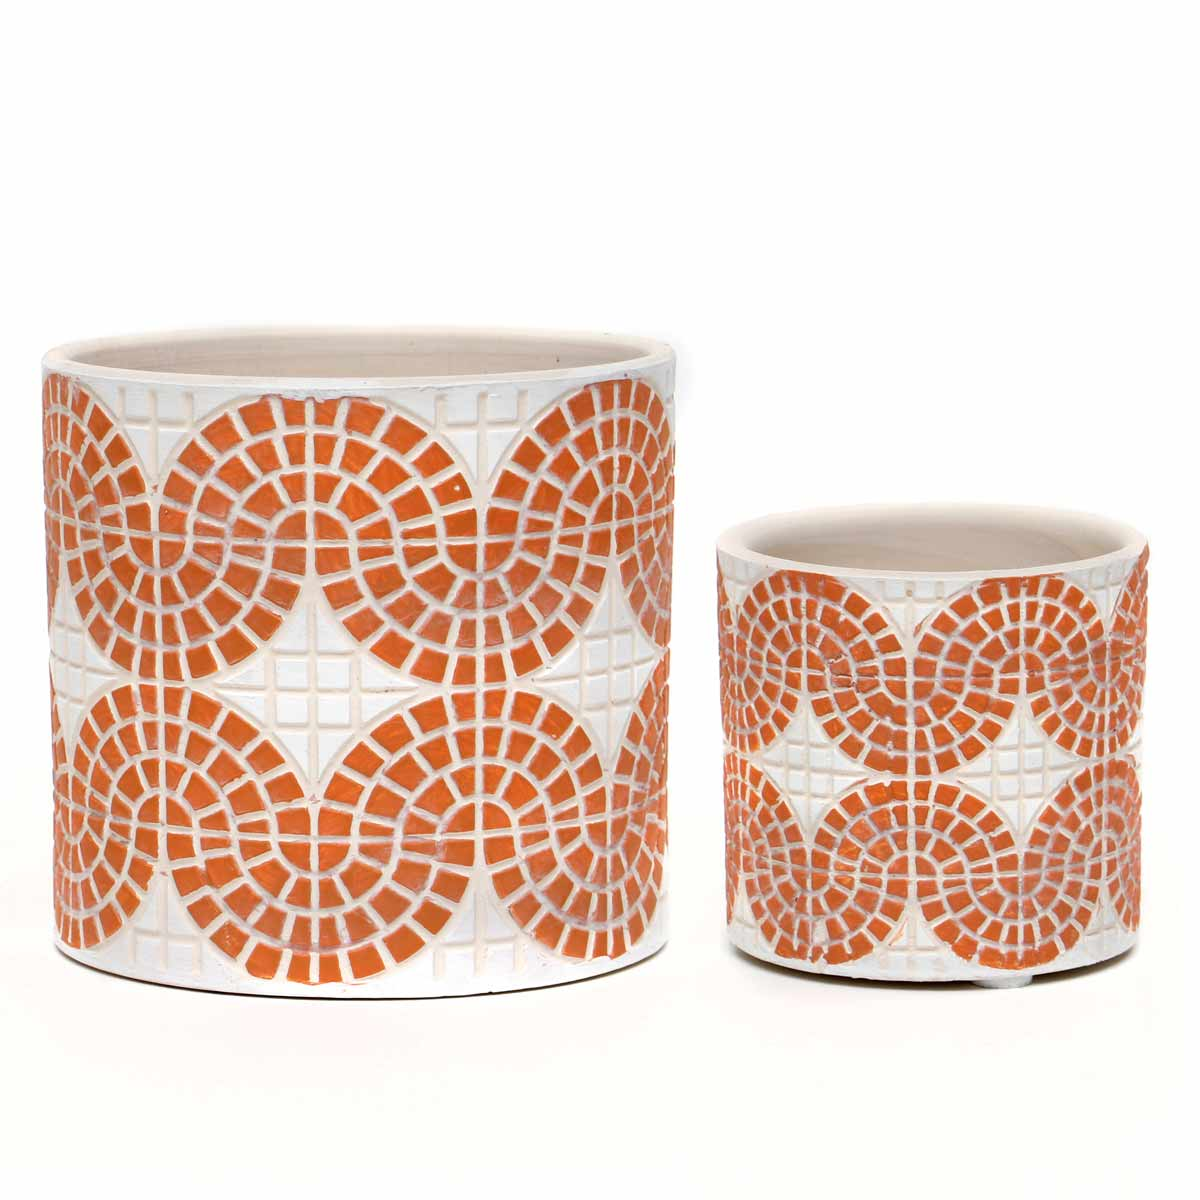 "SET OF 2 WHITE AND CORAL MOSAIC CONCRETE POTS 5.5""X5"" / 2.75""X2."